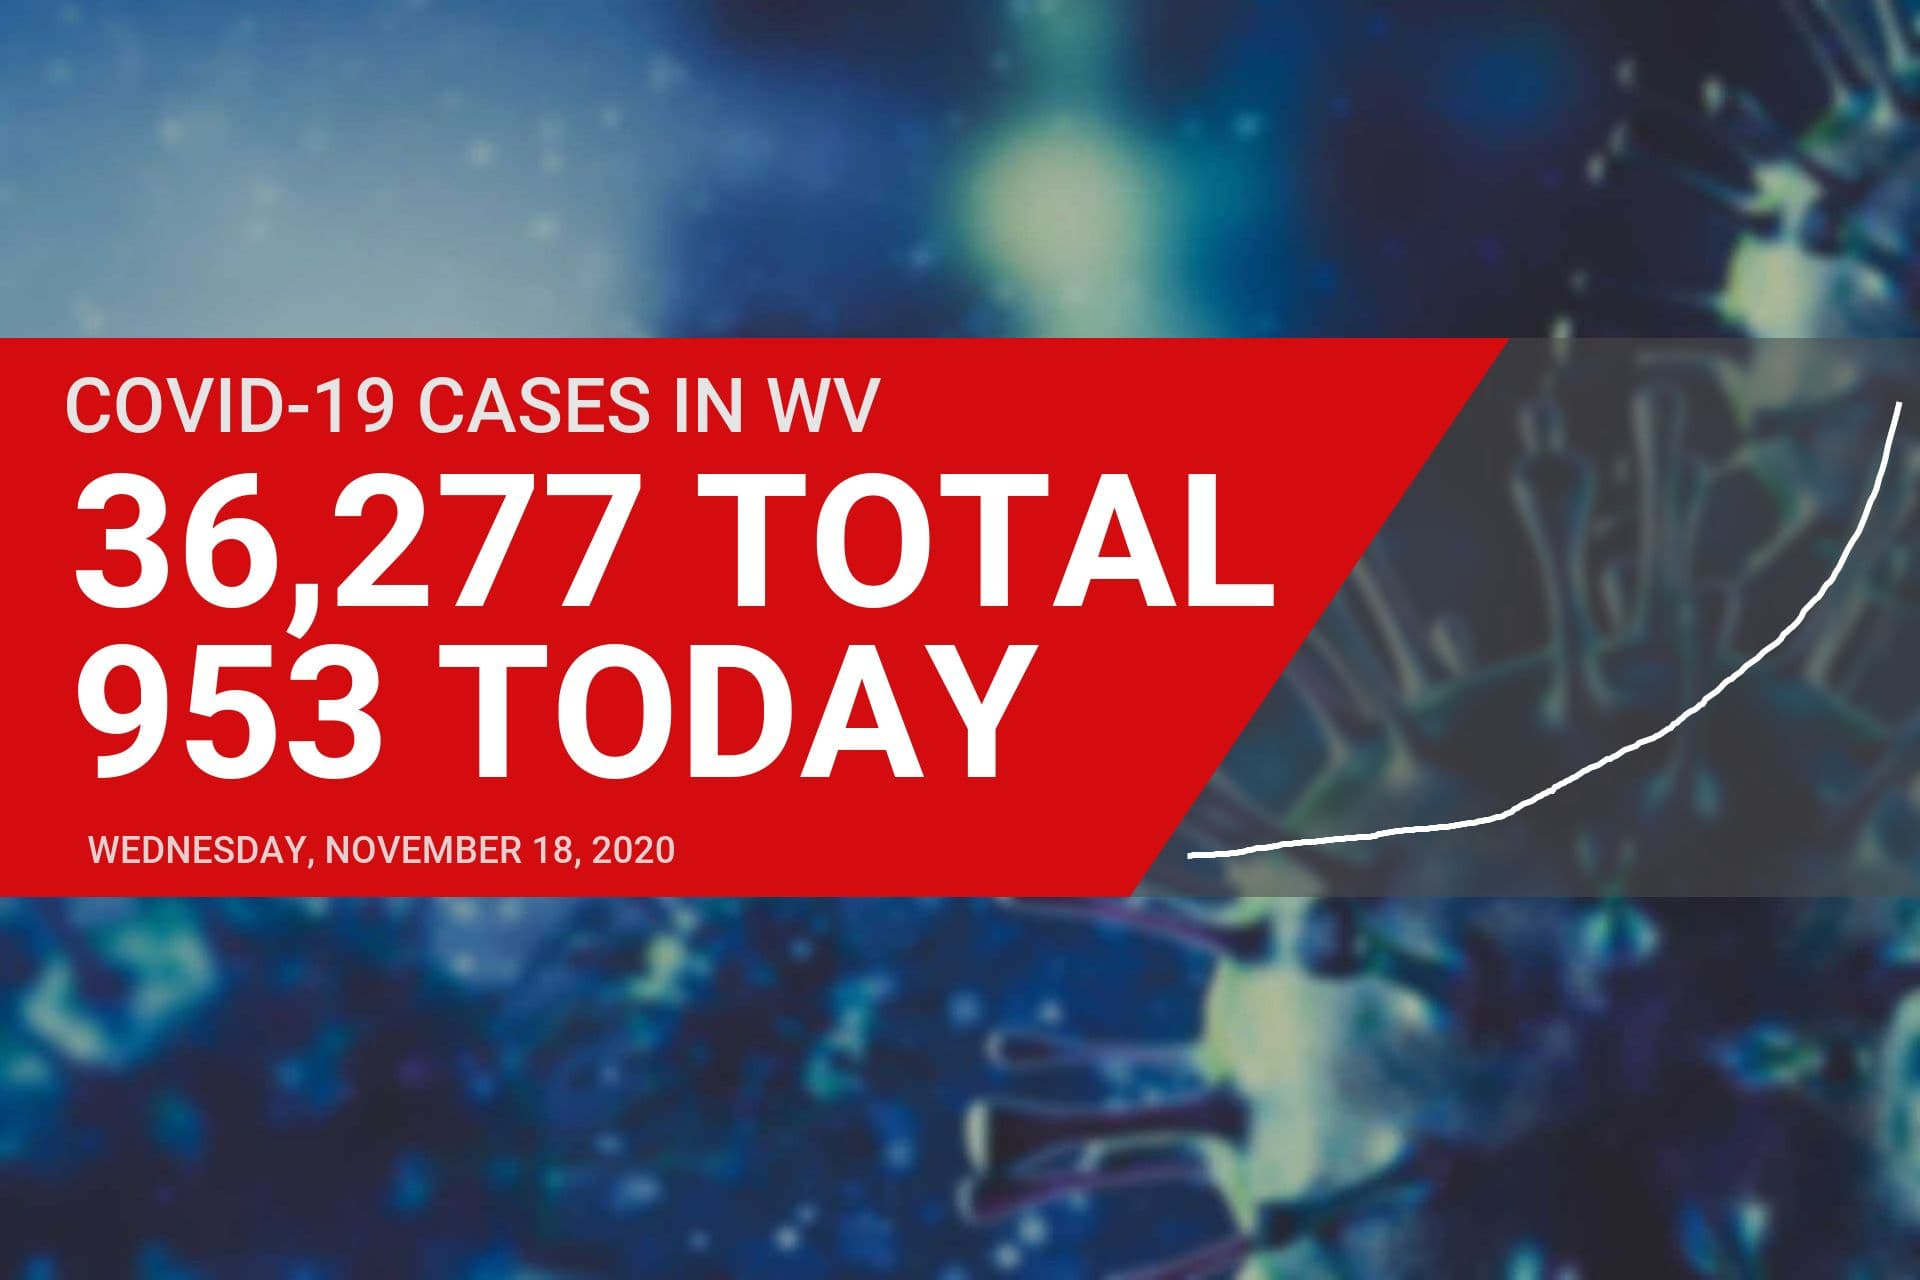 Upshur County reports 14 new COVID-19 cases on Wednesday, total deaths statewide top 600